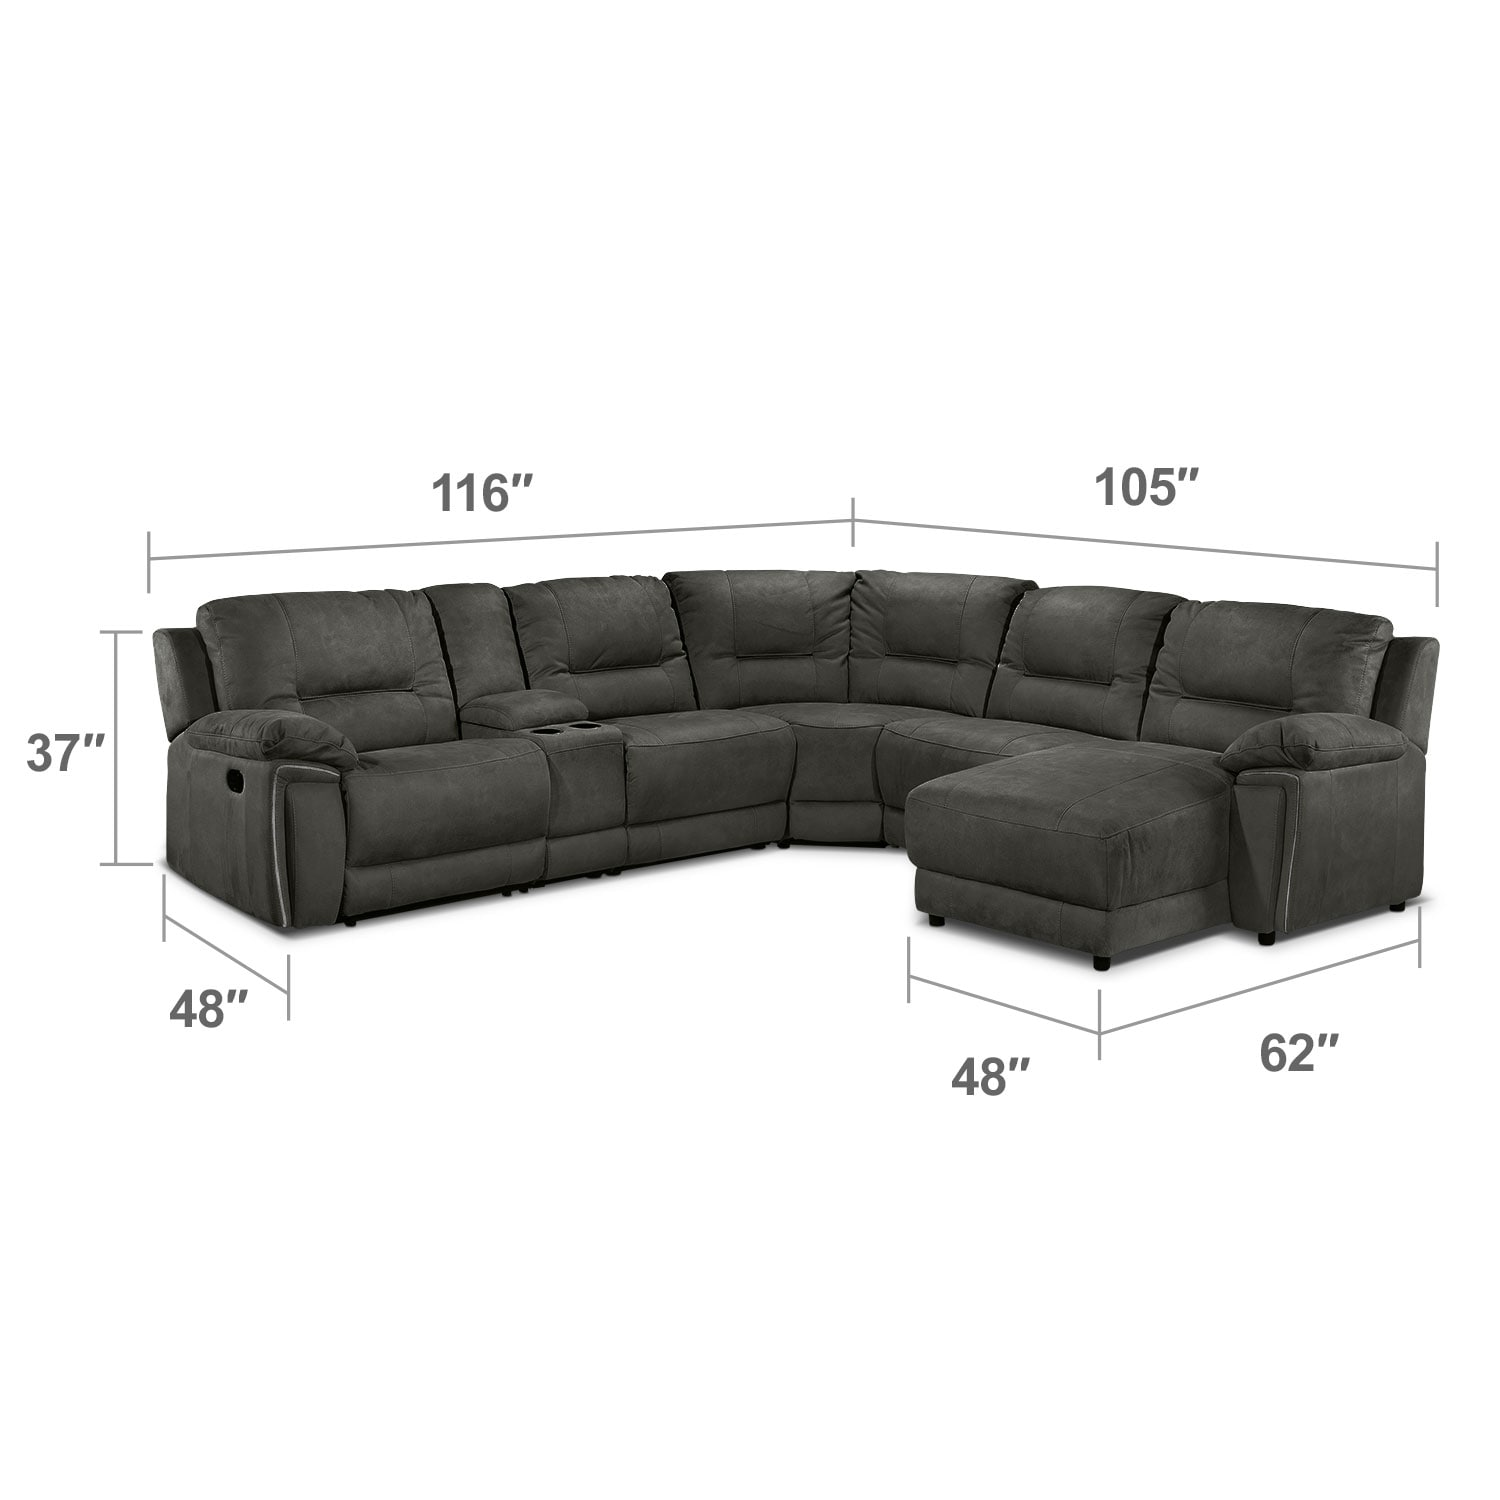 Living Room Furniture - Pasadena 6 Pc. Right-Facing Reclining Sectional - Dark Grey